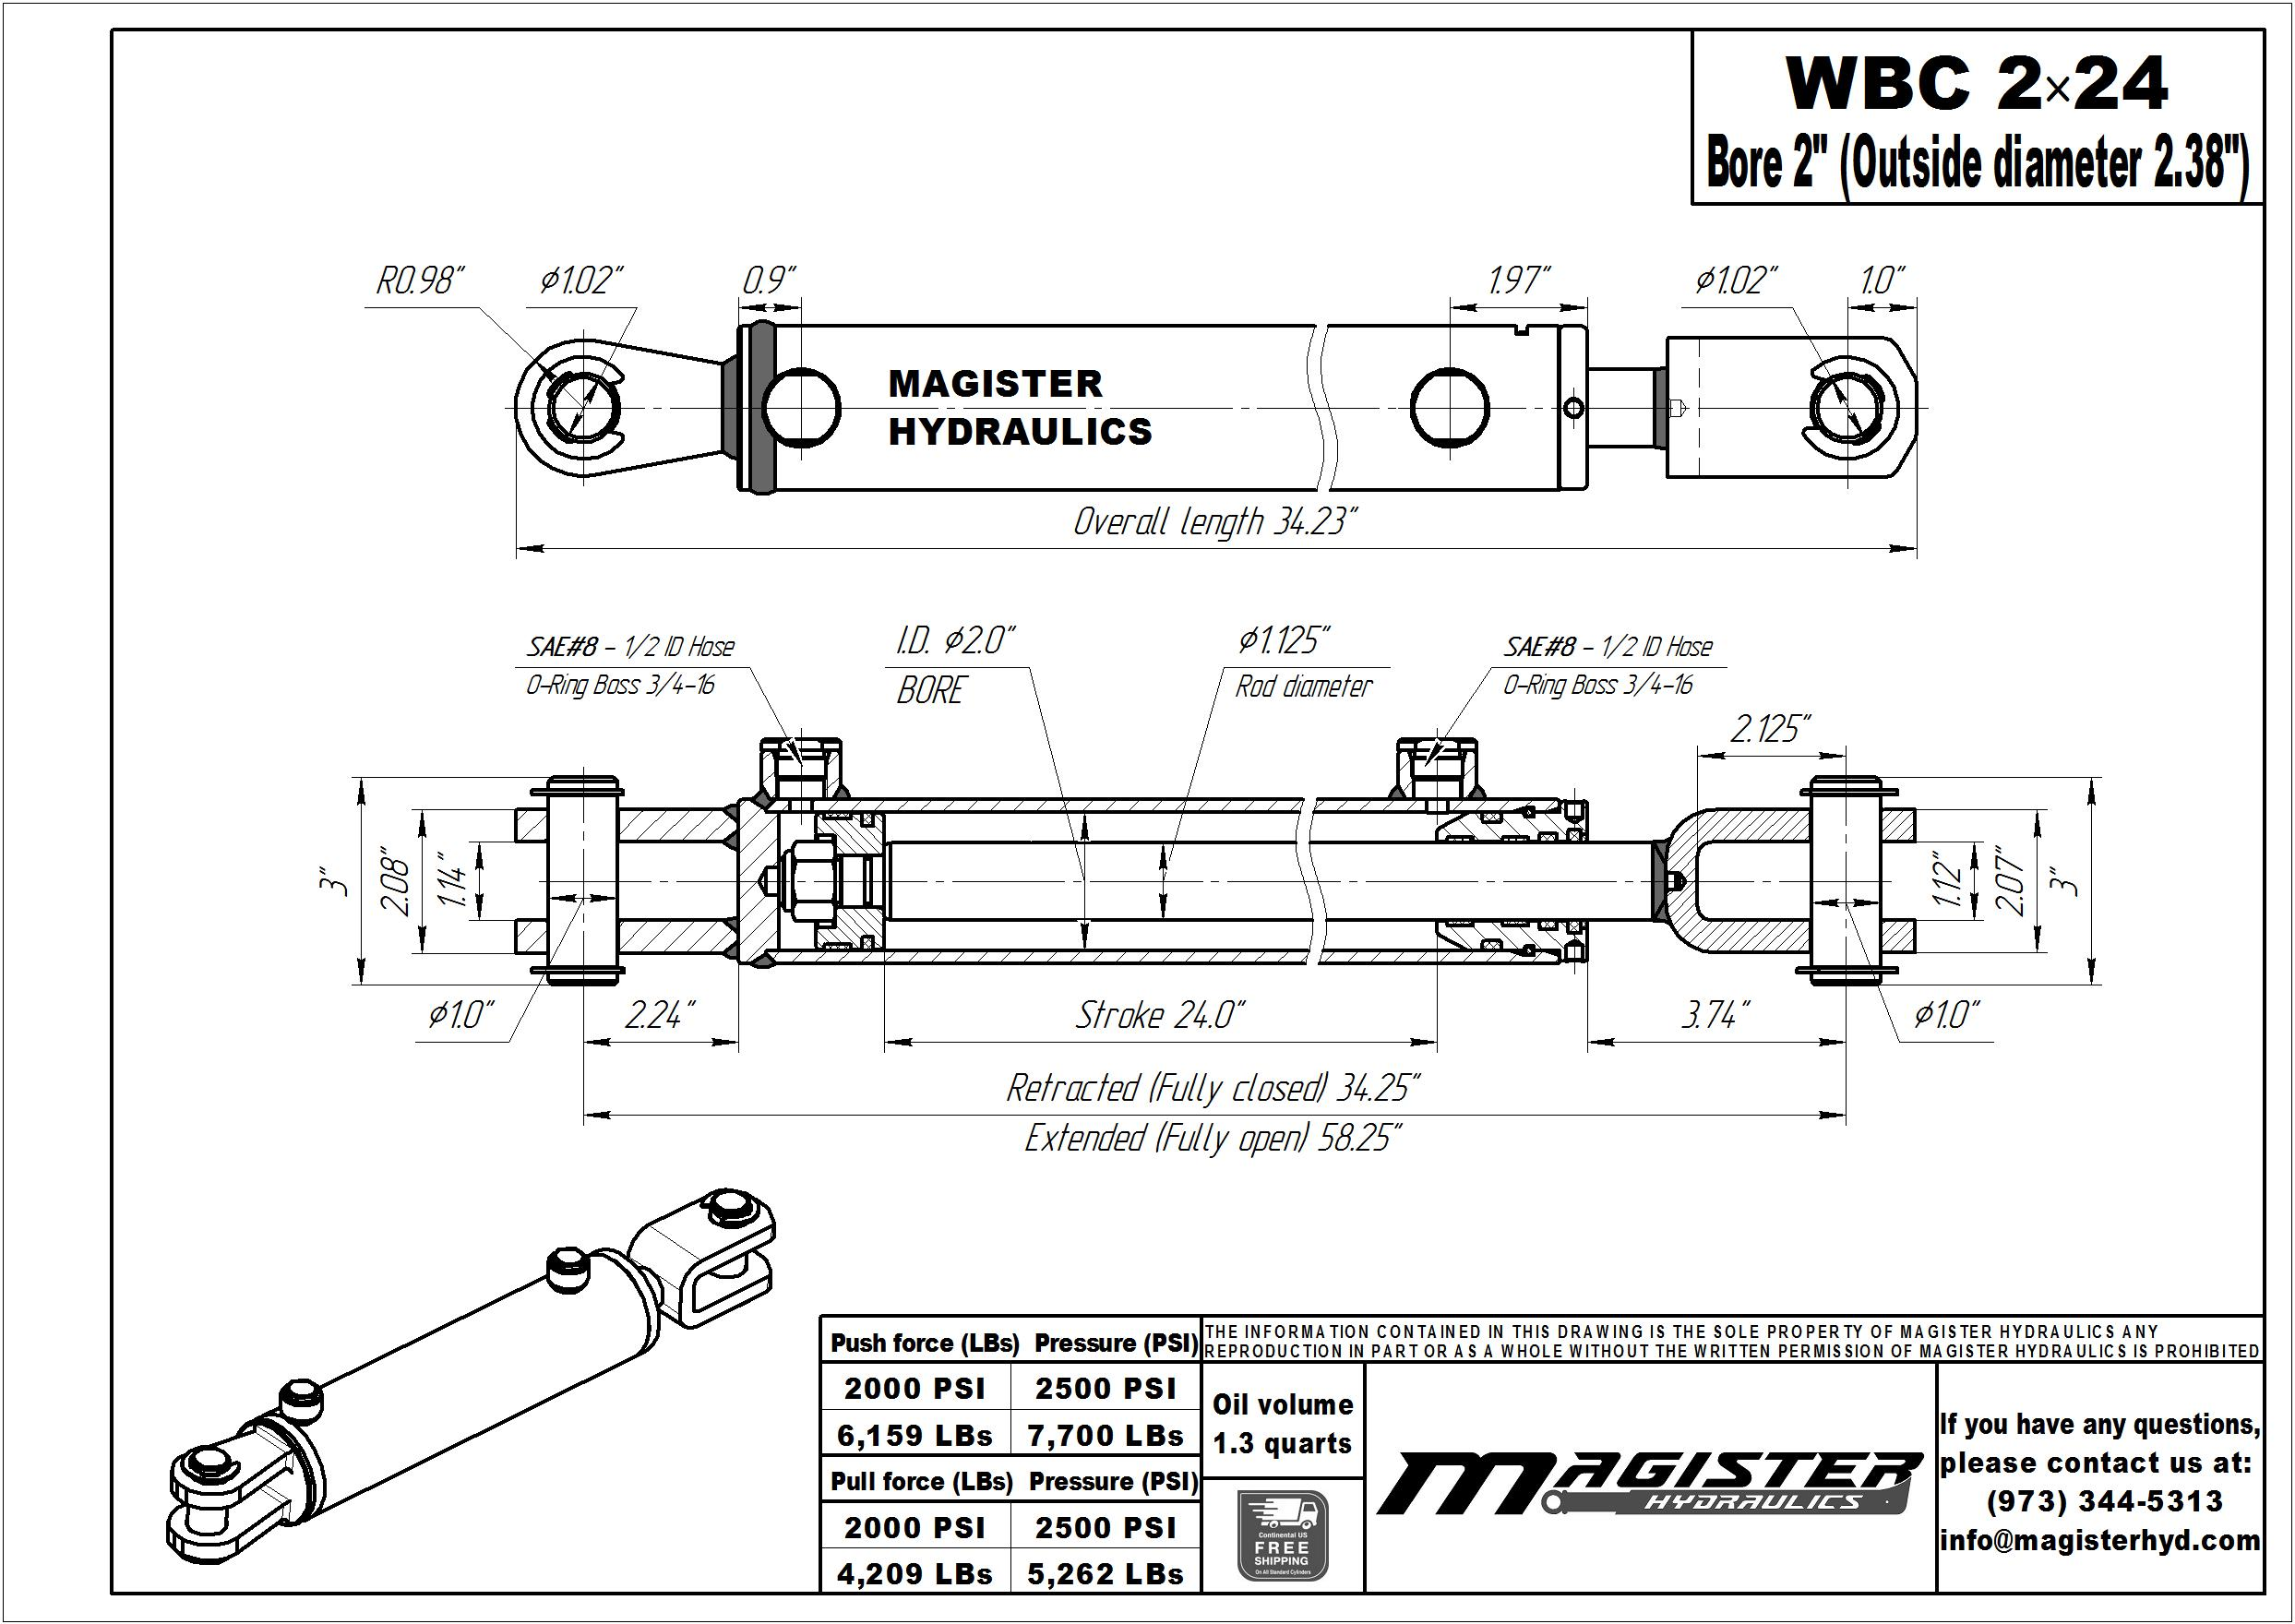 2 bore x 24 stroke hydraulic cylinder, ag clevis double acting cylinder   Magister Hydraulics